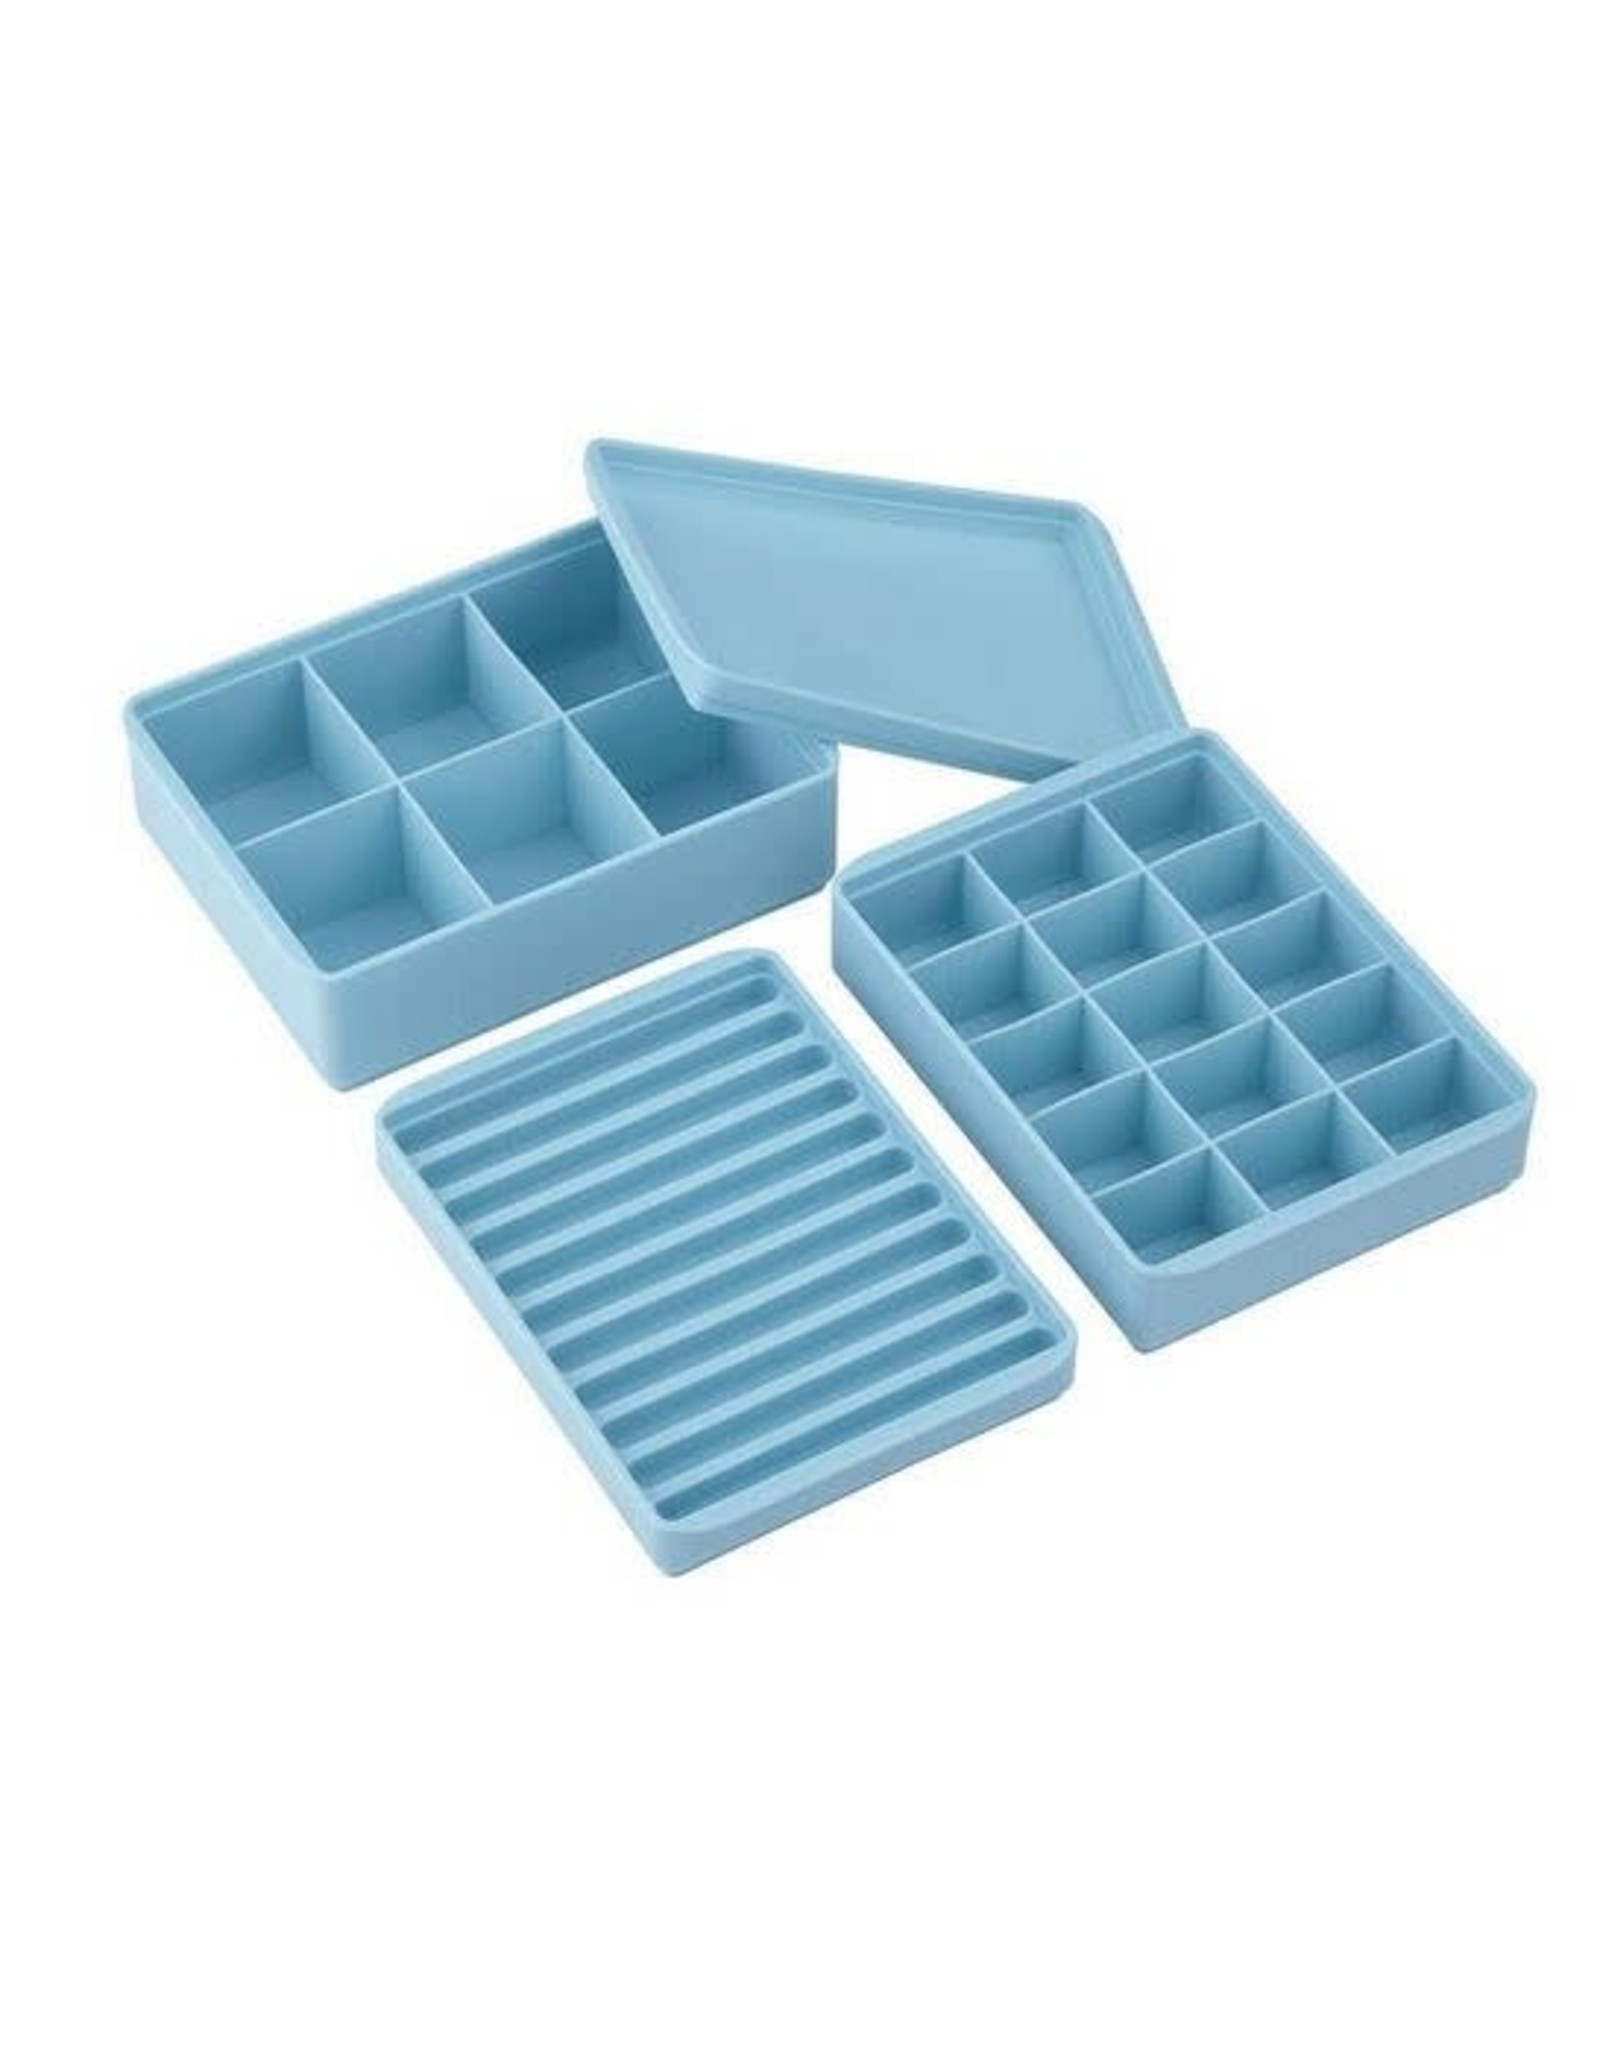 Davis & Waddell Stackable Ice Tray Azure